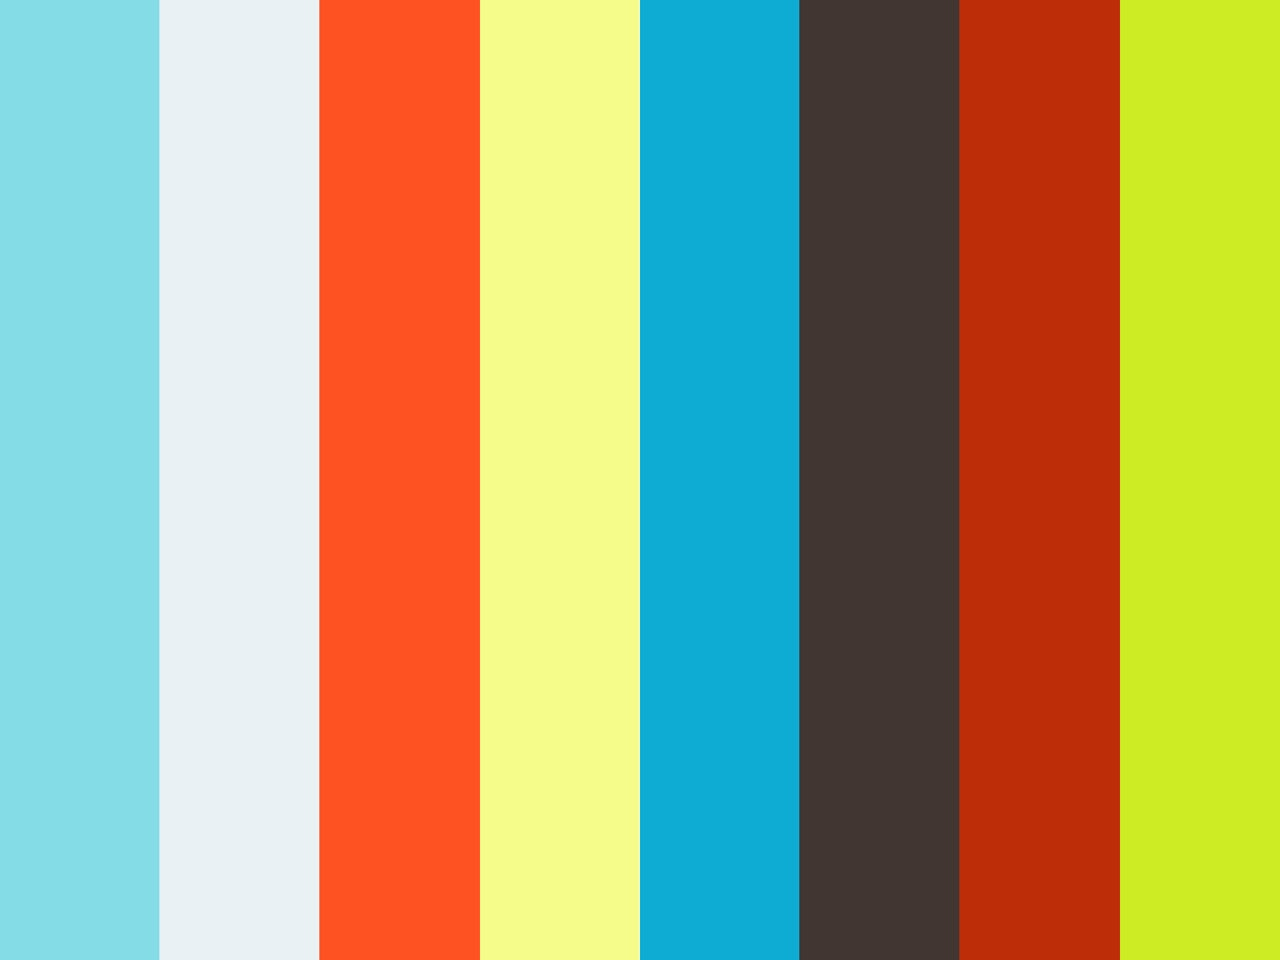 Ep Series Explosion Proof further Warp 9 Engineering Drawing 21635 further Gtechgen additionally Tda7294 Stereo Ton Kontrollu Hoparlor Korumali Amfi moreover T Series. on dc motor drawings